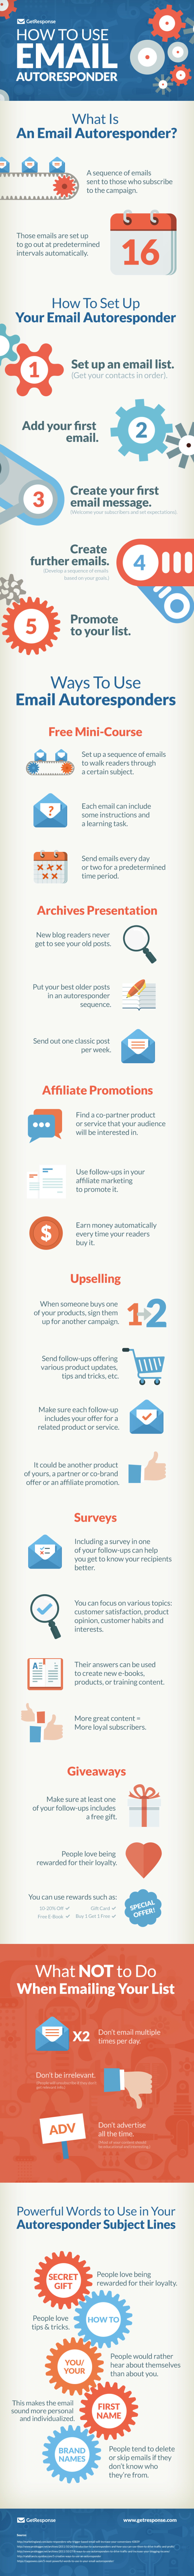 Infographic - How To Use Email Autoresponders